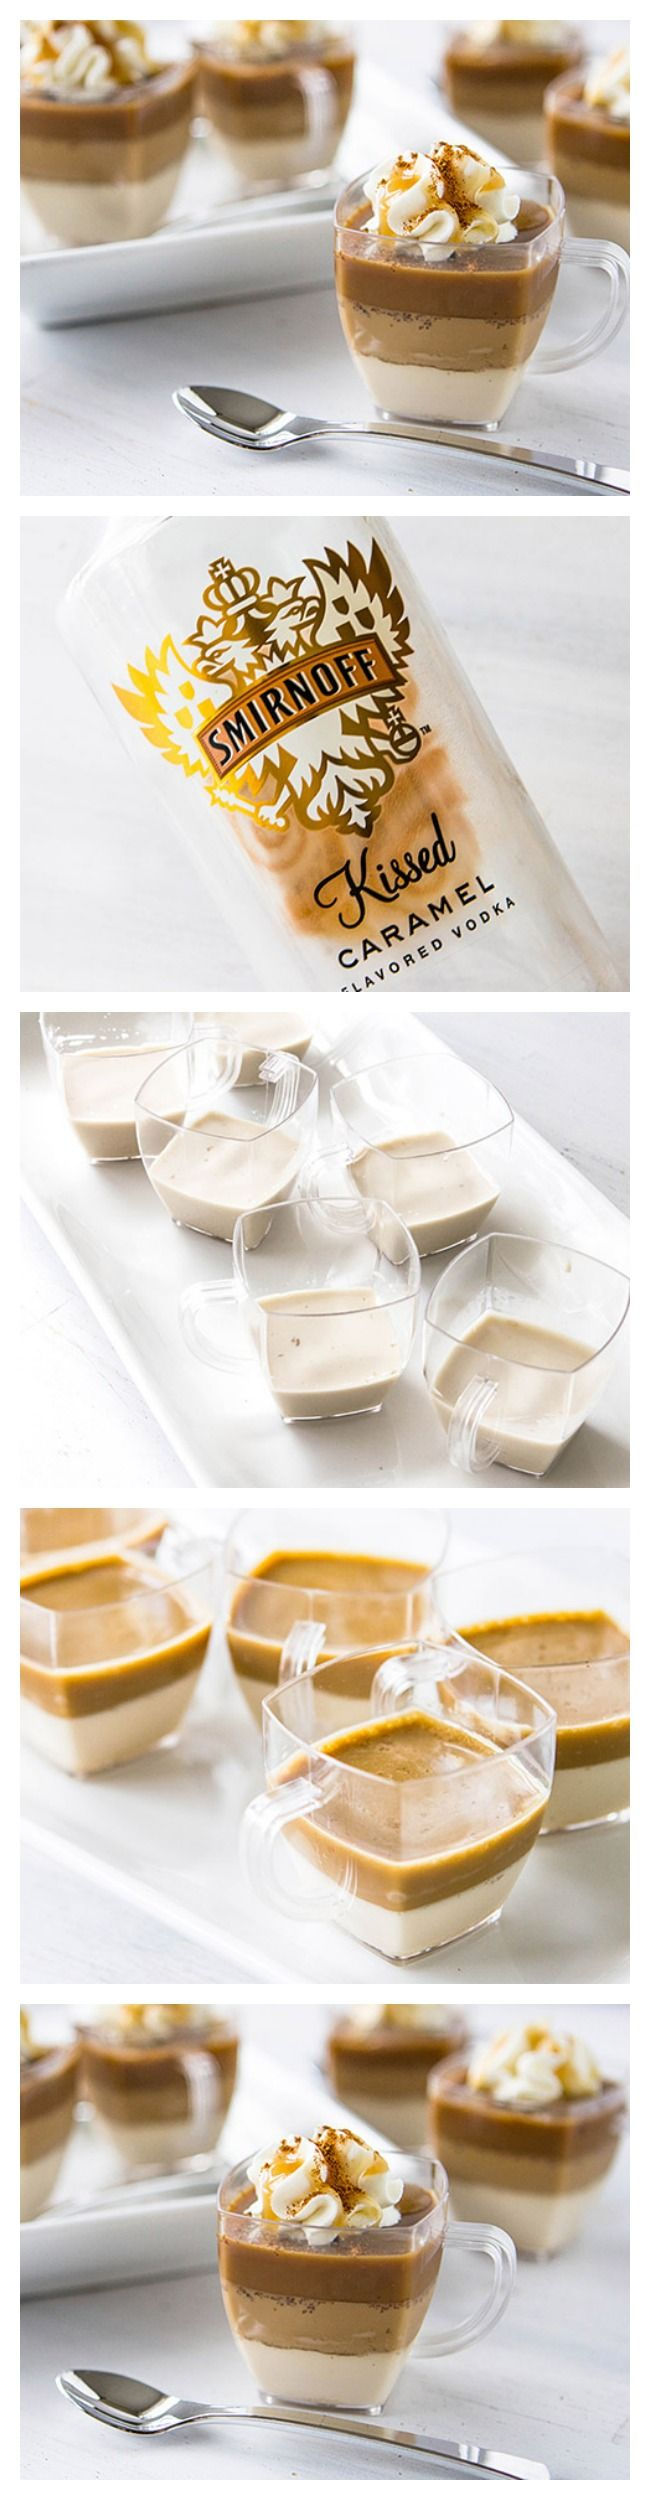 Caramel Macchiato Jelly Shots. Recipes